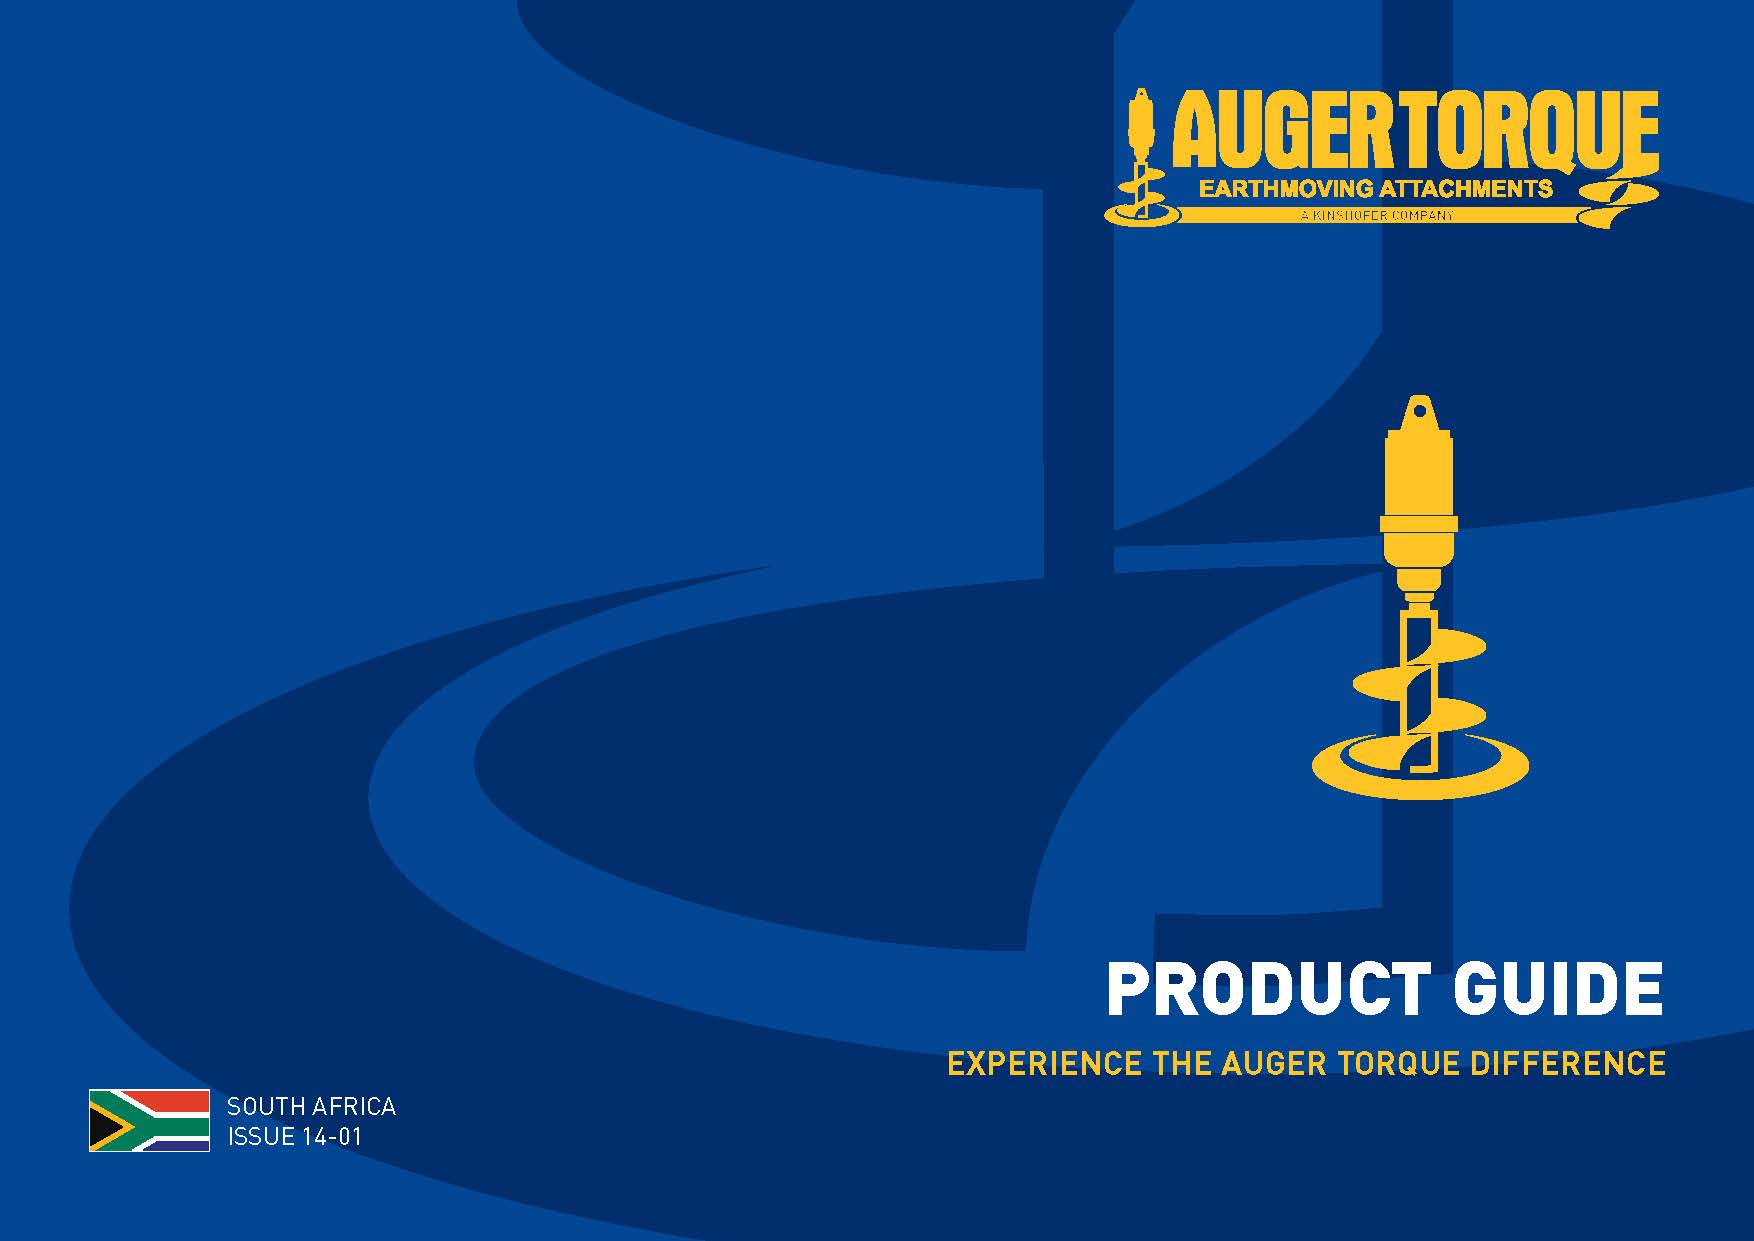 Auger Torque Product Guide